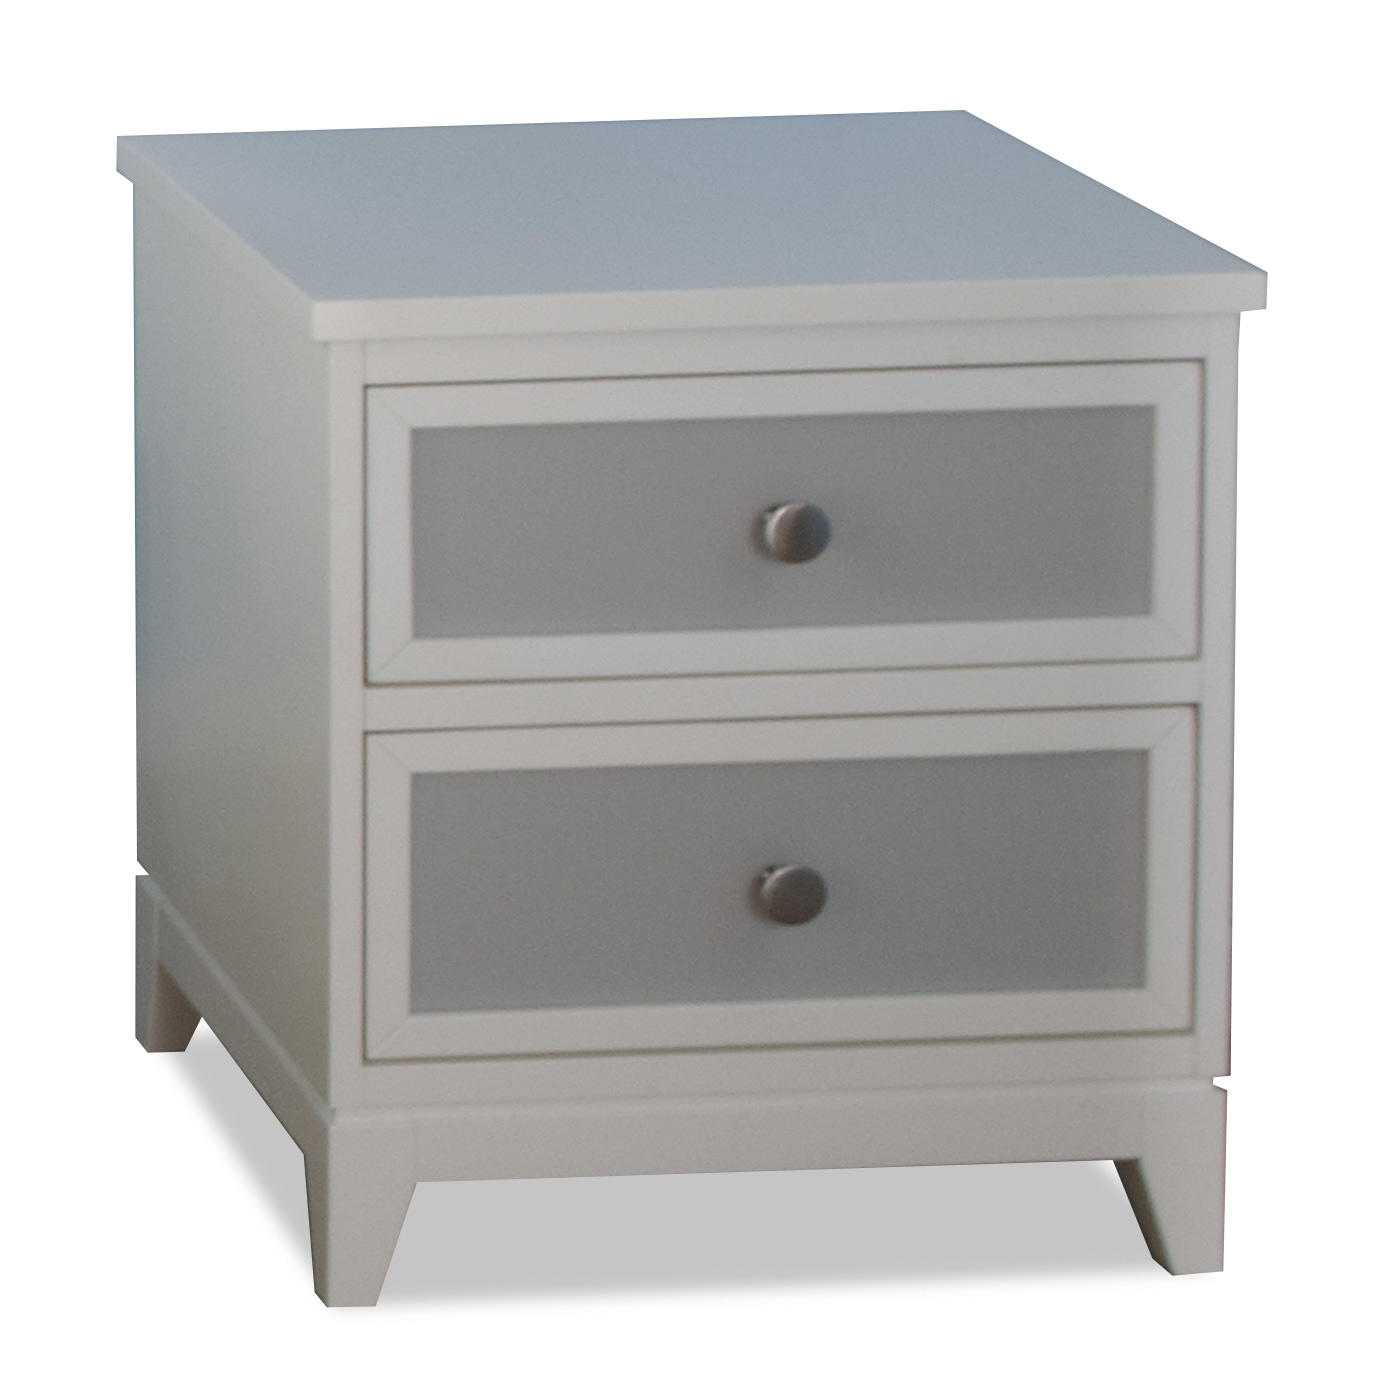 Pali Treviso Two Tone Nightstand In White Grey